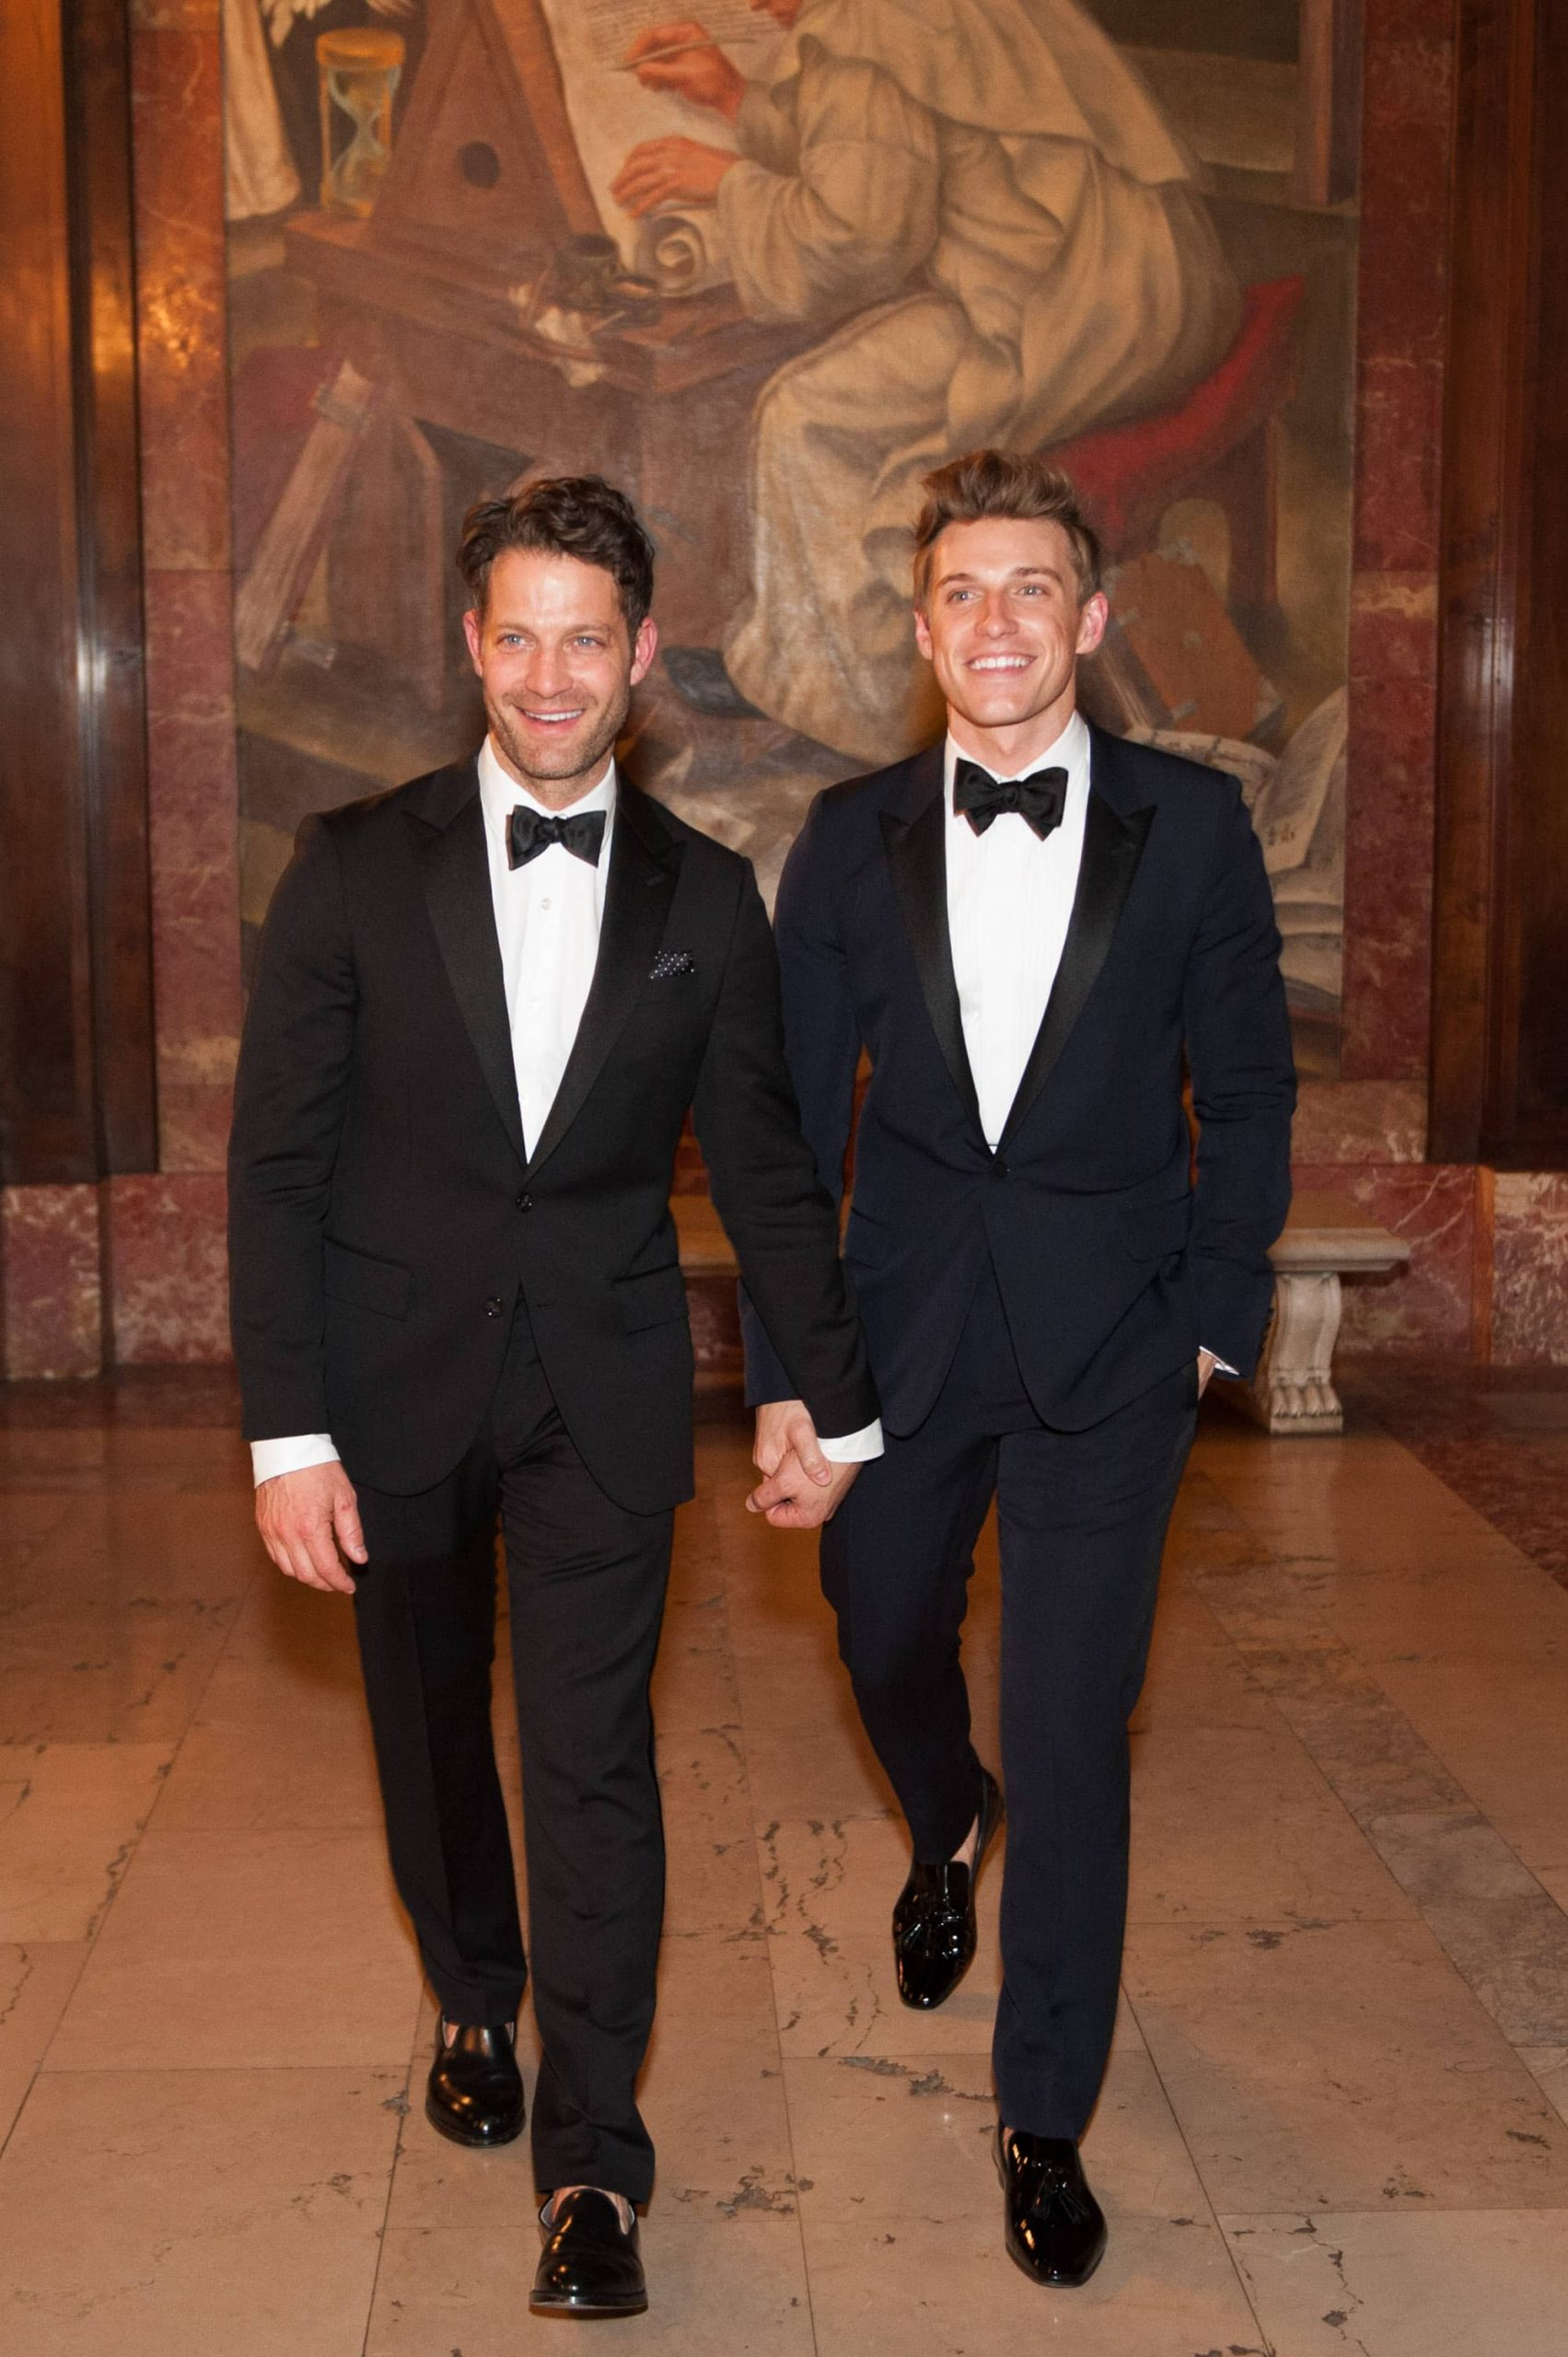 Grooms smiling in black tuxedos with black bowties at this New York Public Library wedding | Photo by Genevieve de Manio